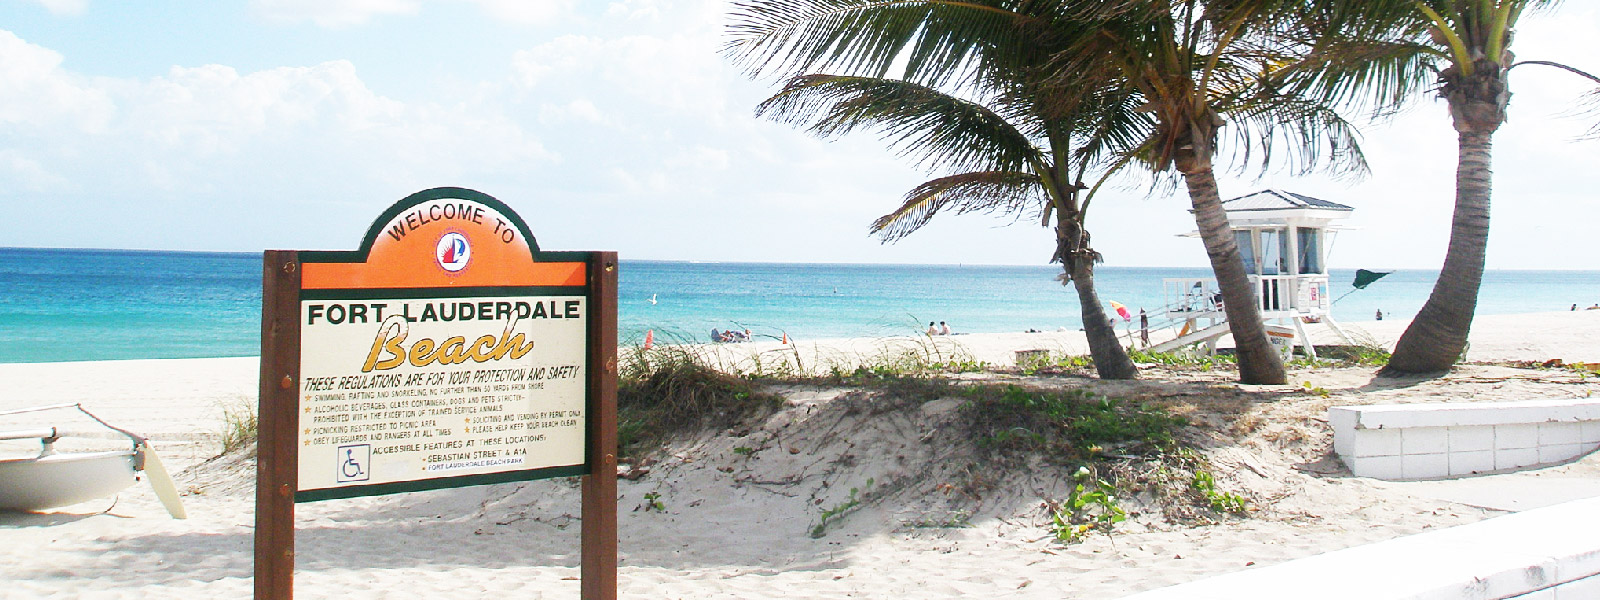 Fort Lauderdale Beach sign in front of the ocean and palm trees.